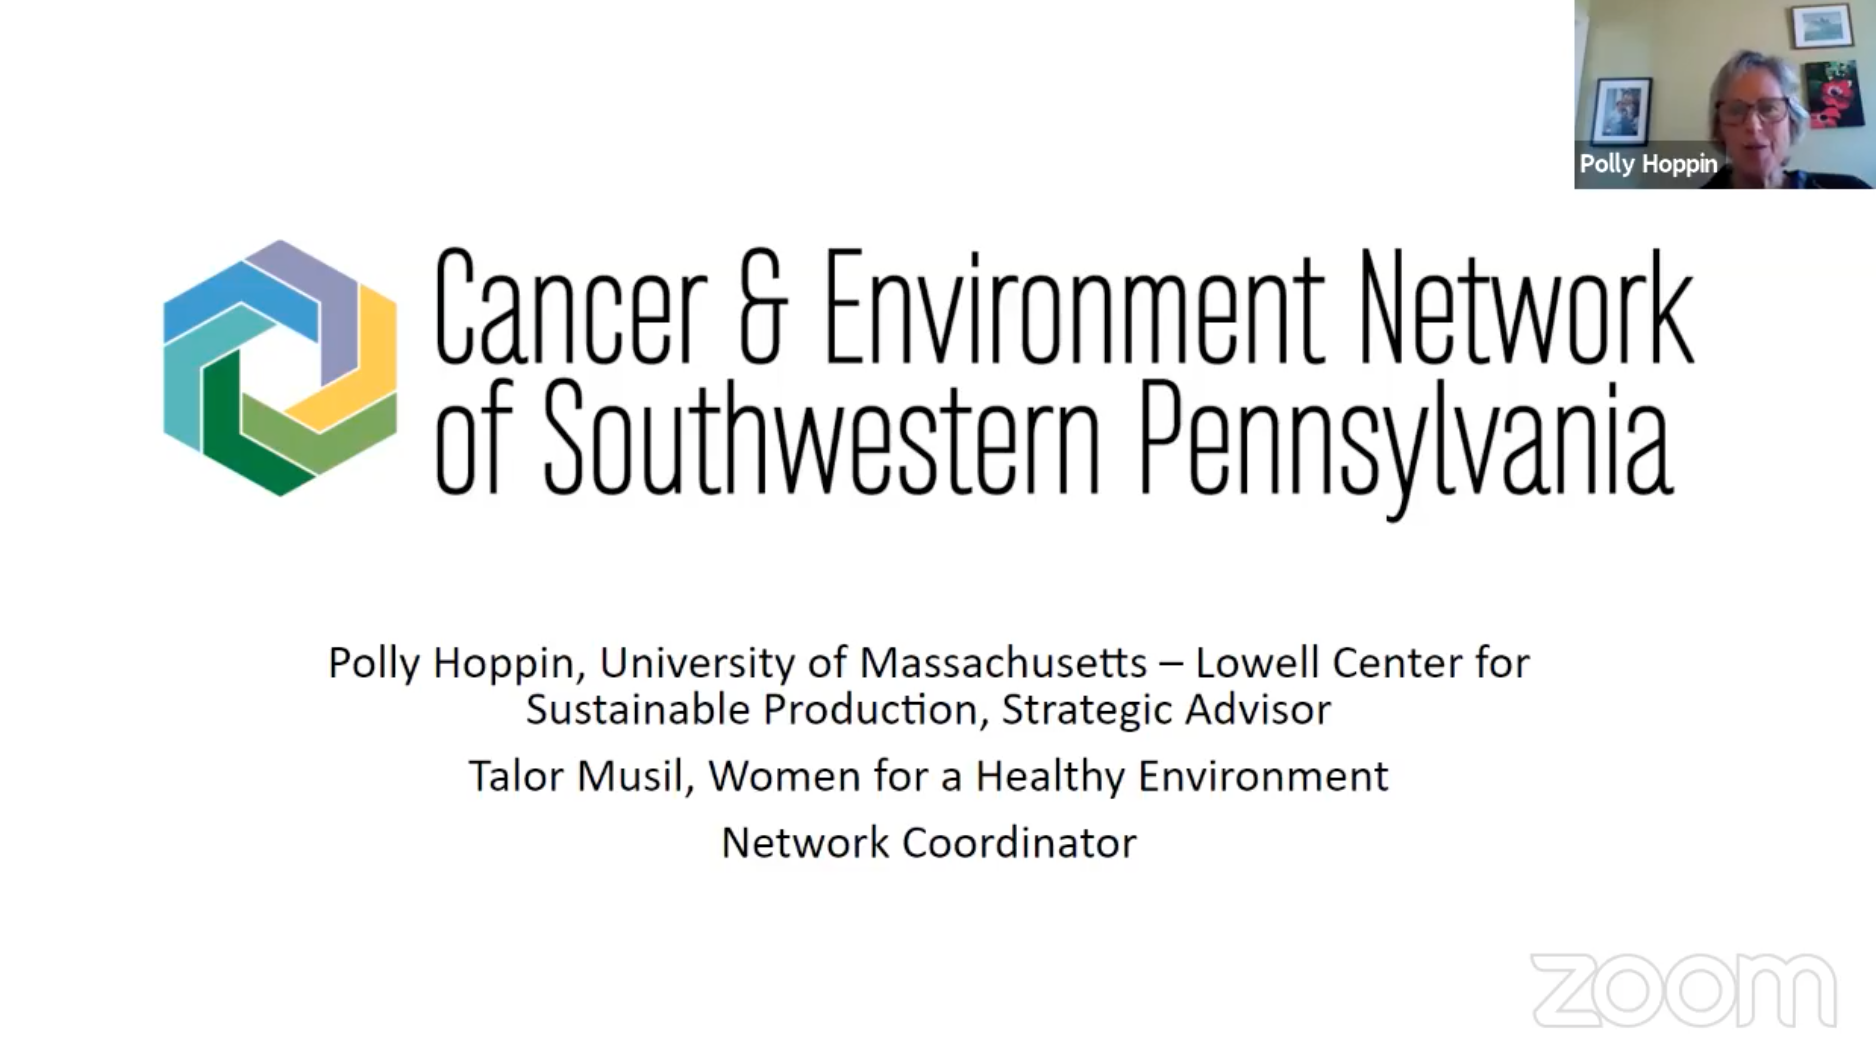 Cancer and Environmental Pollution in Greater Pittsburgh, PA